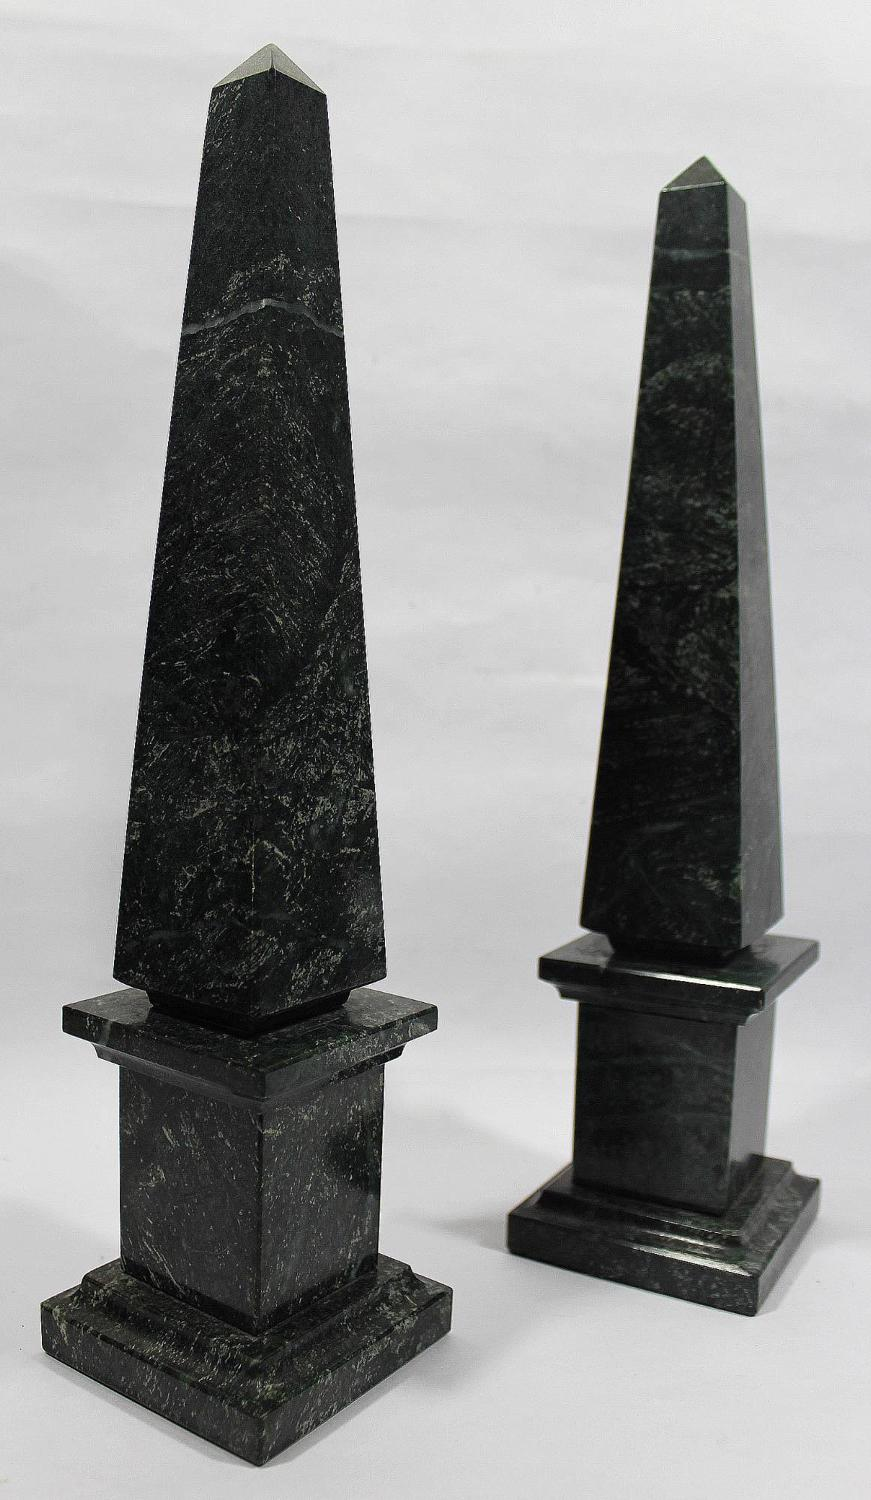 Pair of Verde Antico Marble Obelisks